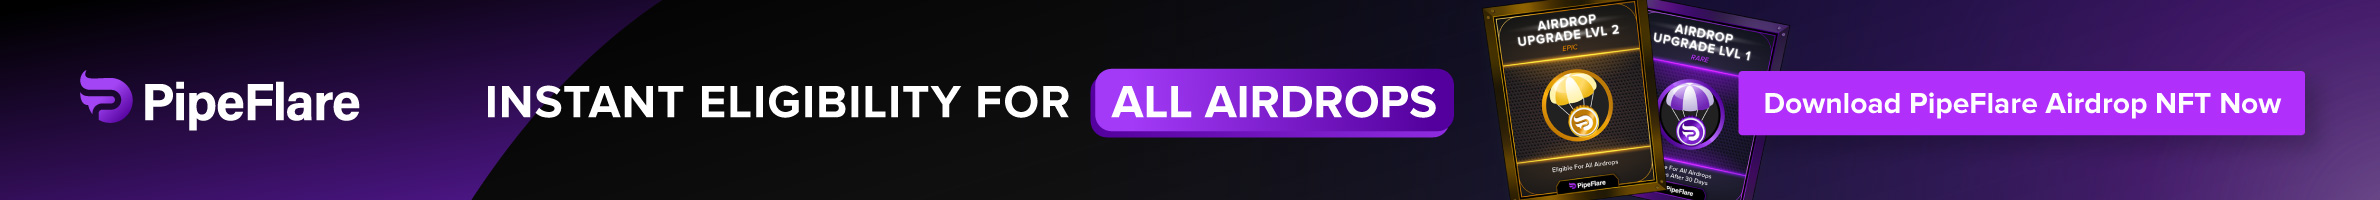 advertising-stripe-airdrops-eligibility-banner